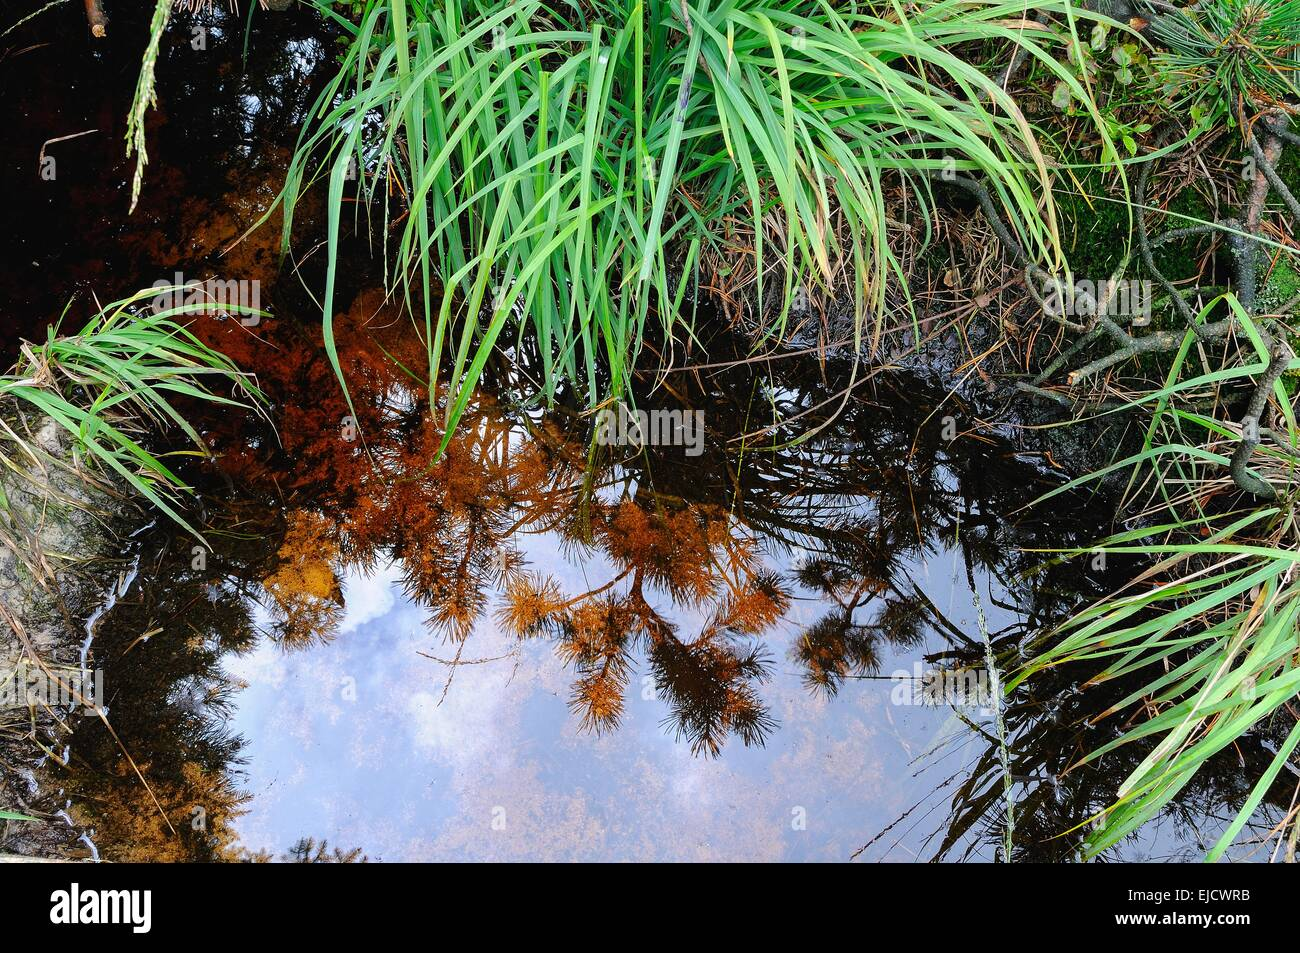 mirrored in the bog water Stock Photo